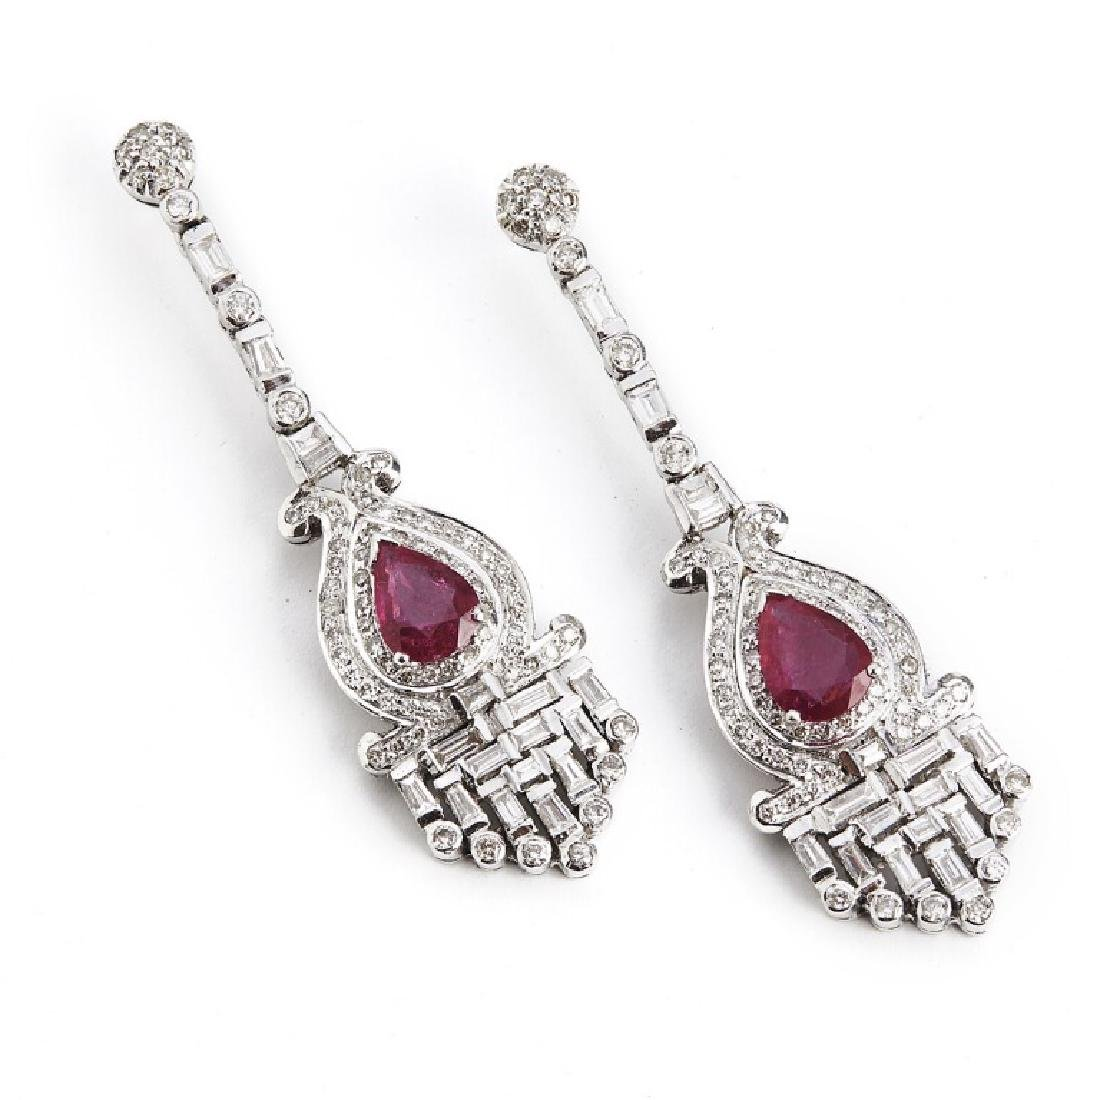 A pair of ruby and diamond ear pendants set with